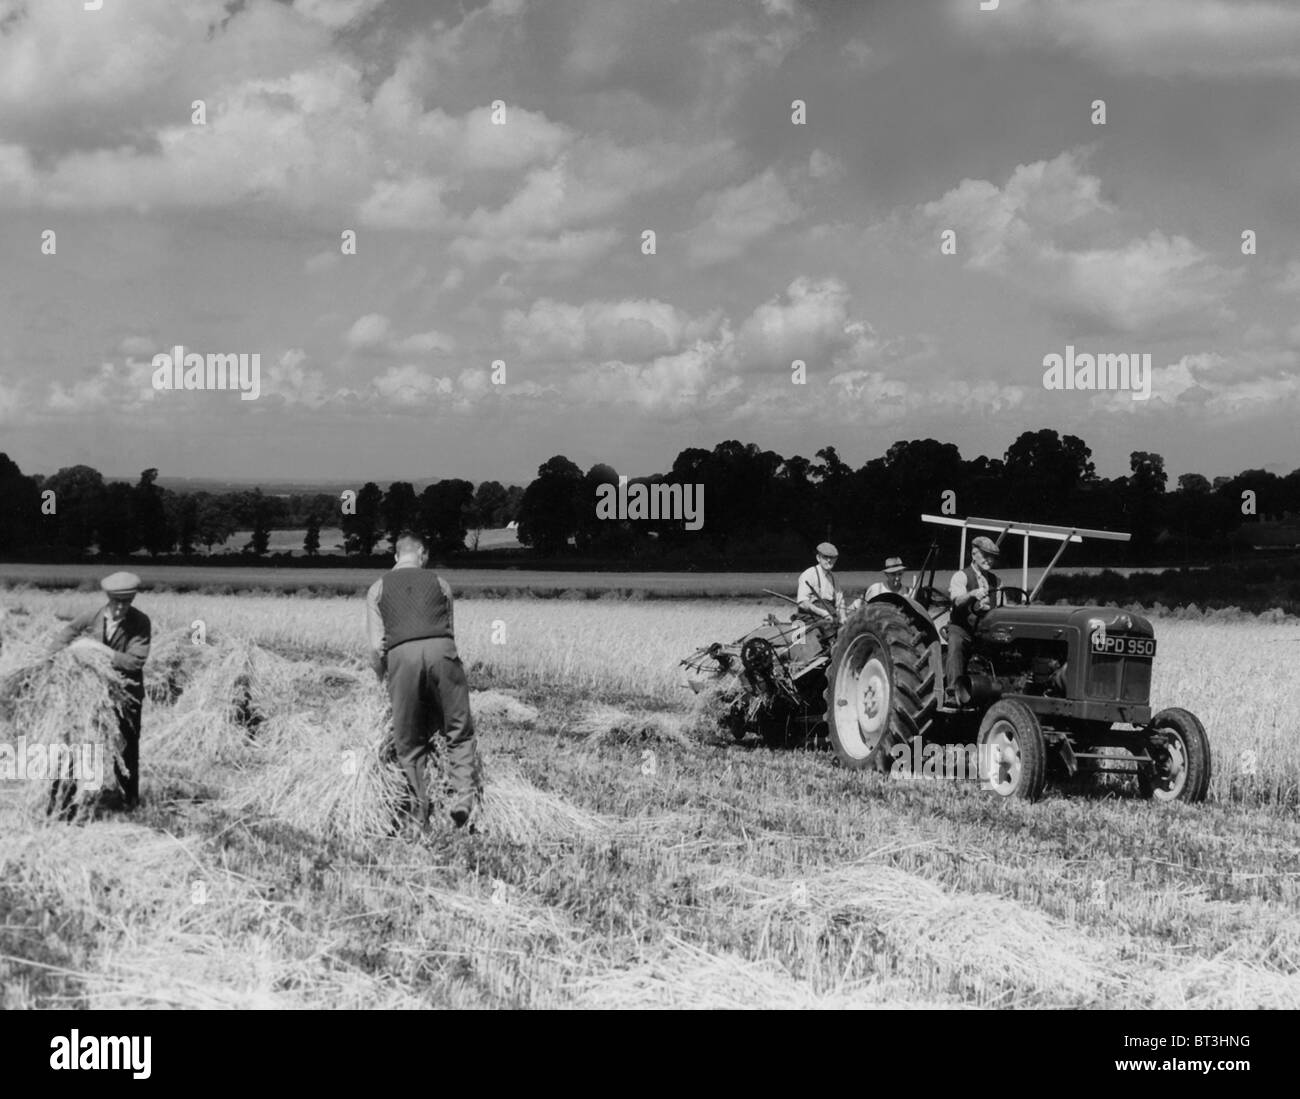 Vintage farming images from 1930's a binder working in the fields and later the making of a haystack - Stock Image